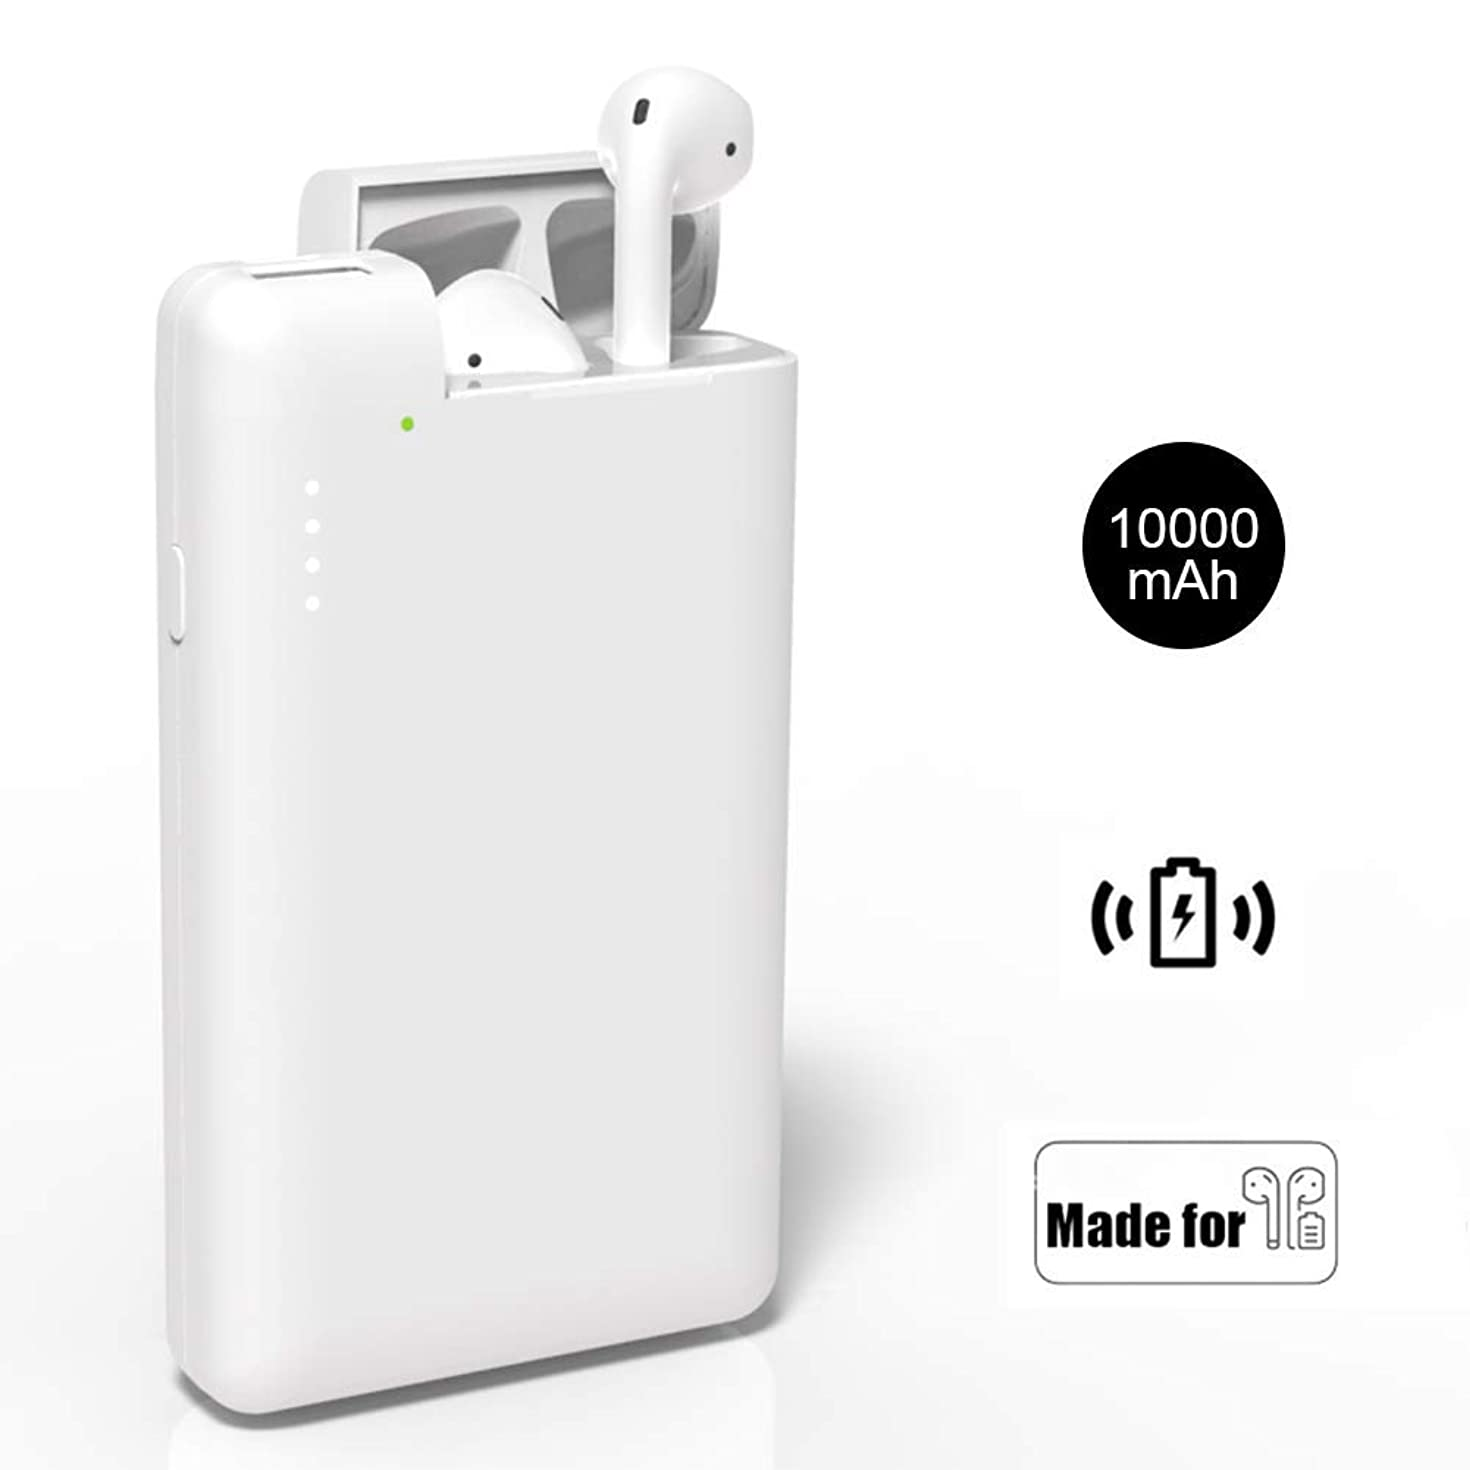 NeotrixQI AirPods Charging Case Replacement Portable Charger, 10000mAh Power Bank Multi-Function External Battery Pack Compatible with Apple AirPods iPhone Xs/XR/X/8 Plus/8 Samsung Galaxy S10/9/S8